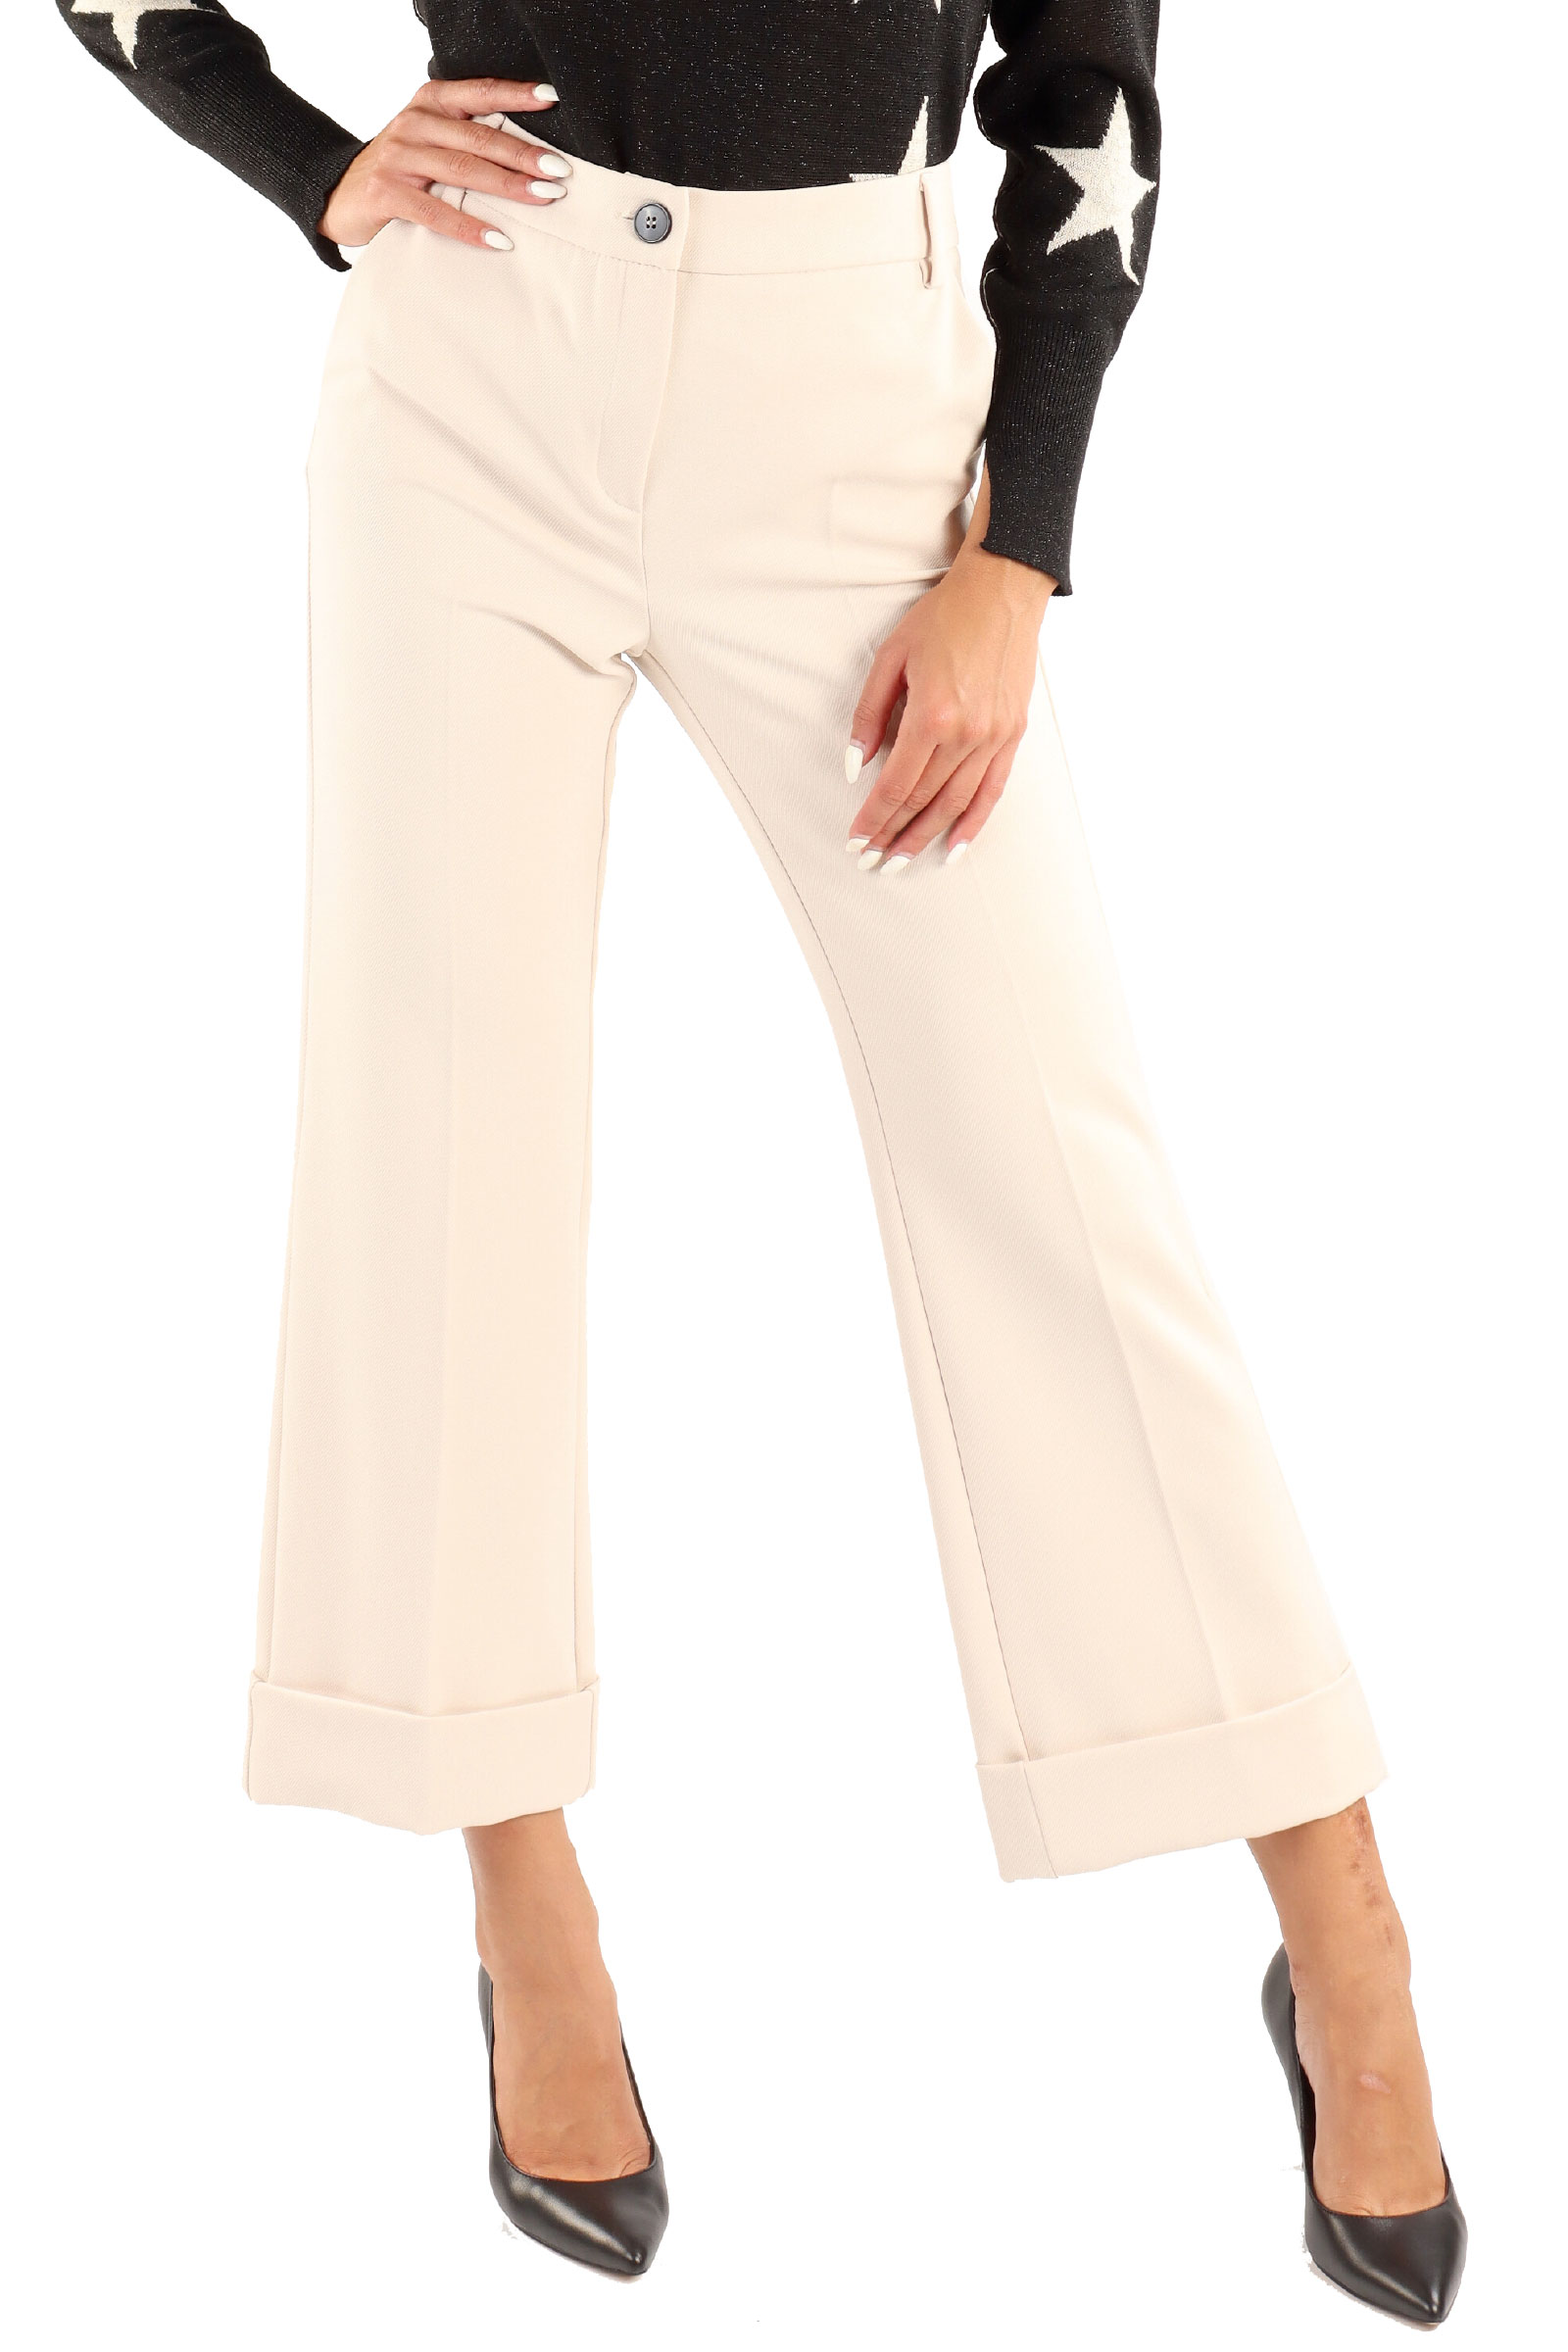 EMME MARELLA   Trousers   51360819200001